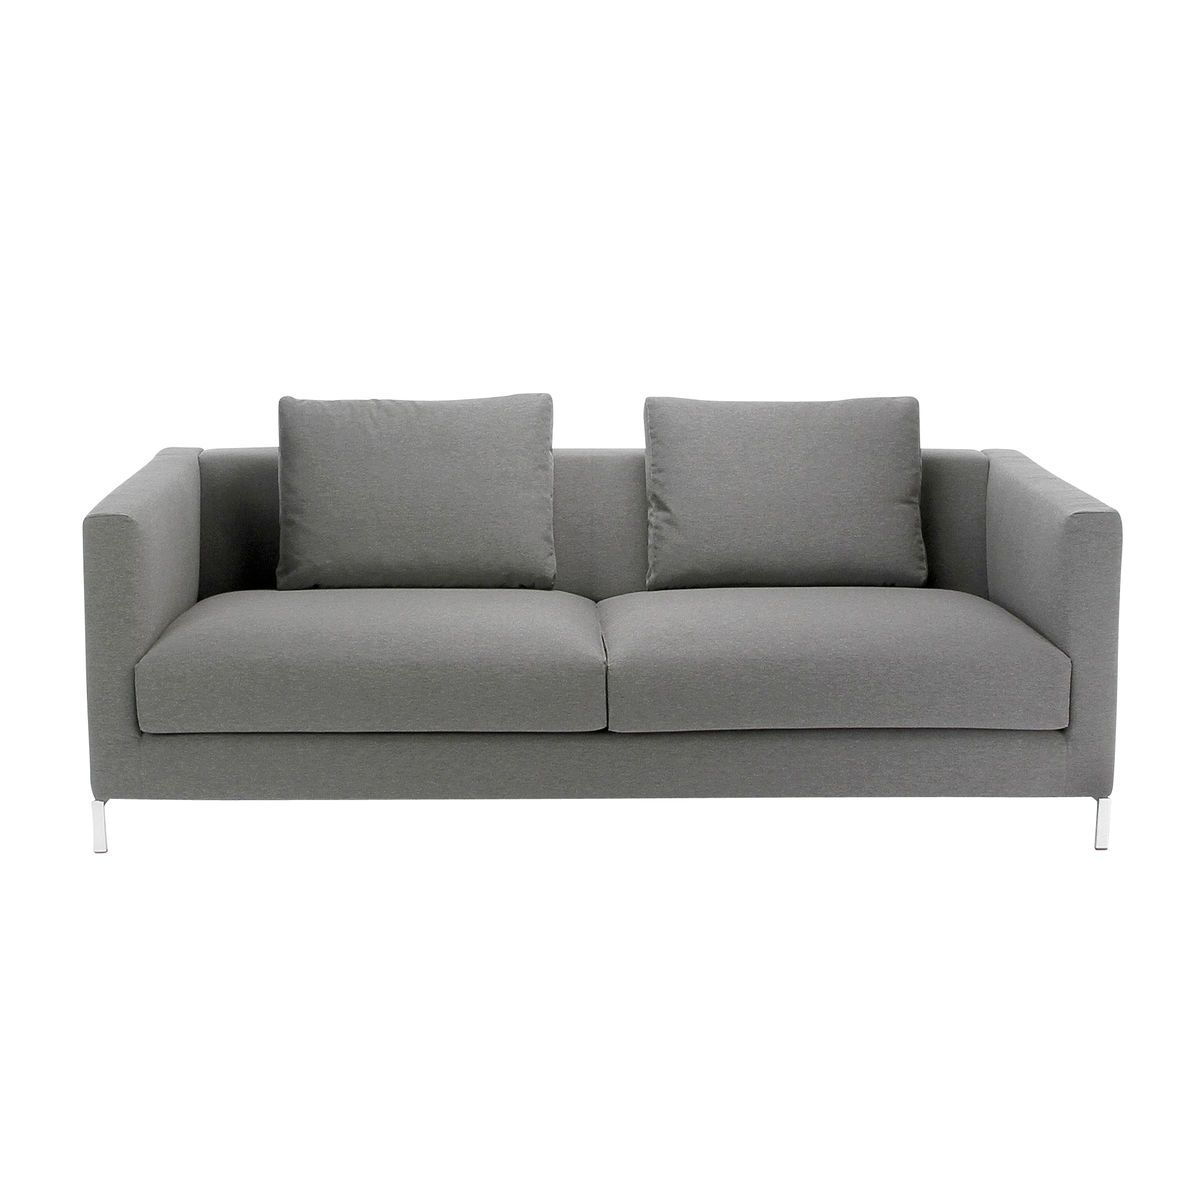 Cube Sofa 3-Sitzer Couch | ADWOOD | AmbienteDirect.com